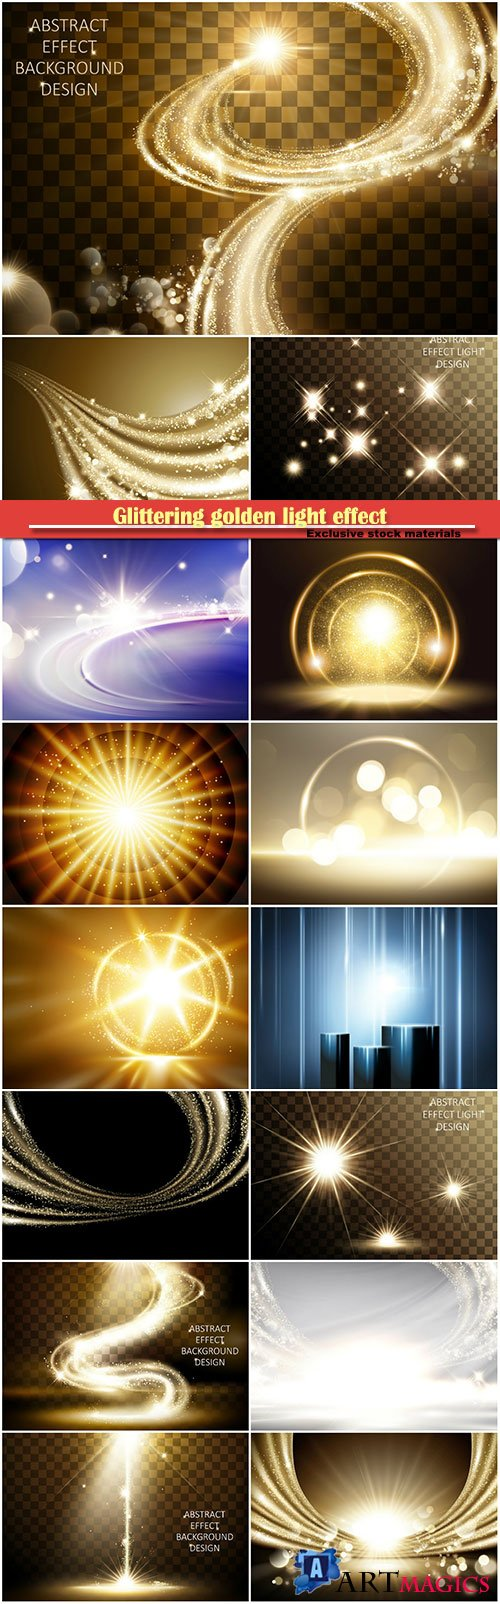 Glittering golden light effect, satin vector background